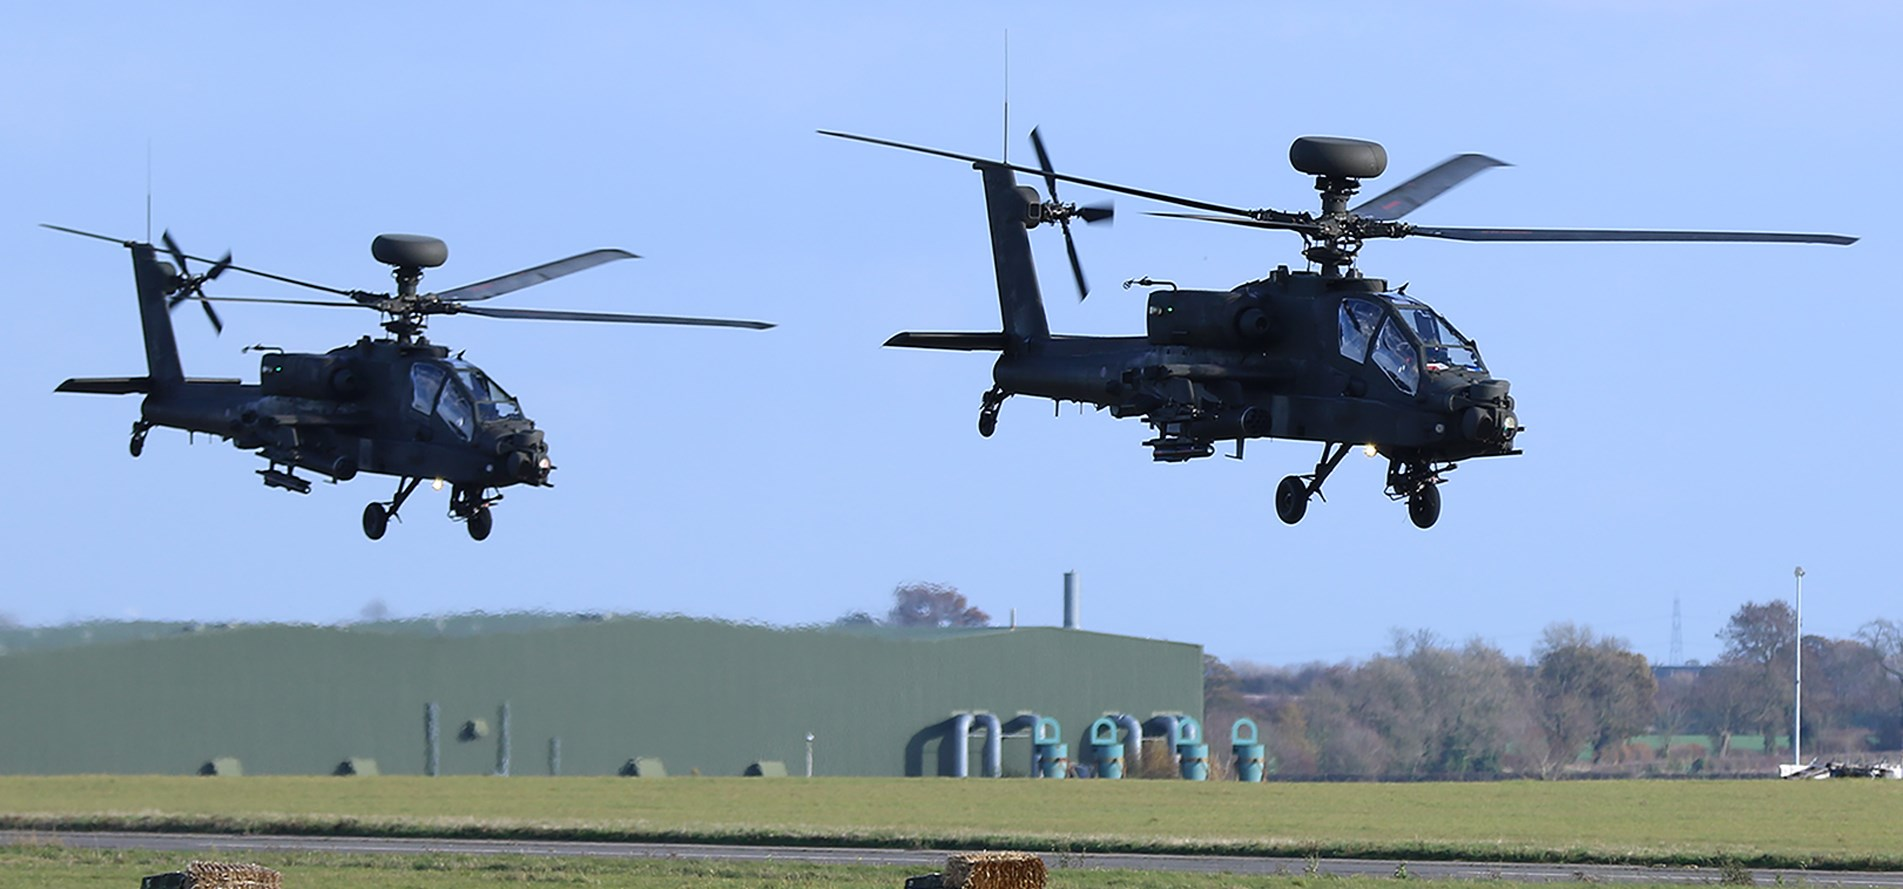 Apoemid 083 Attack Helicopters 021 Anchor Center Mode Crop Width Height 889 Rnd Image From Centre Python